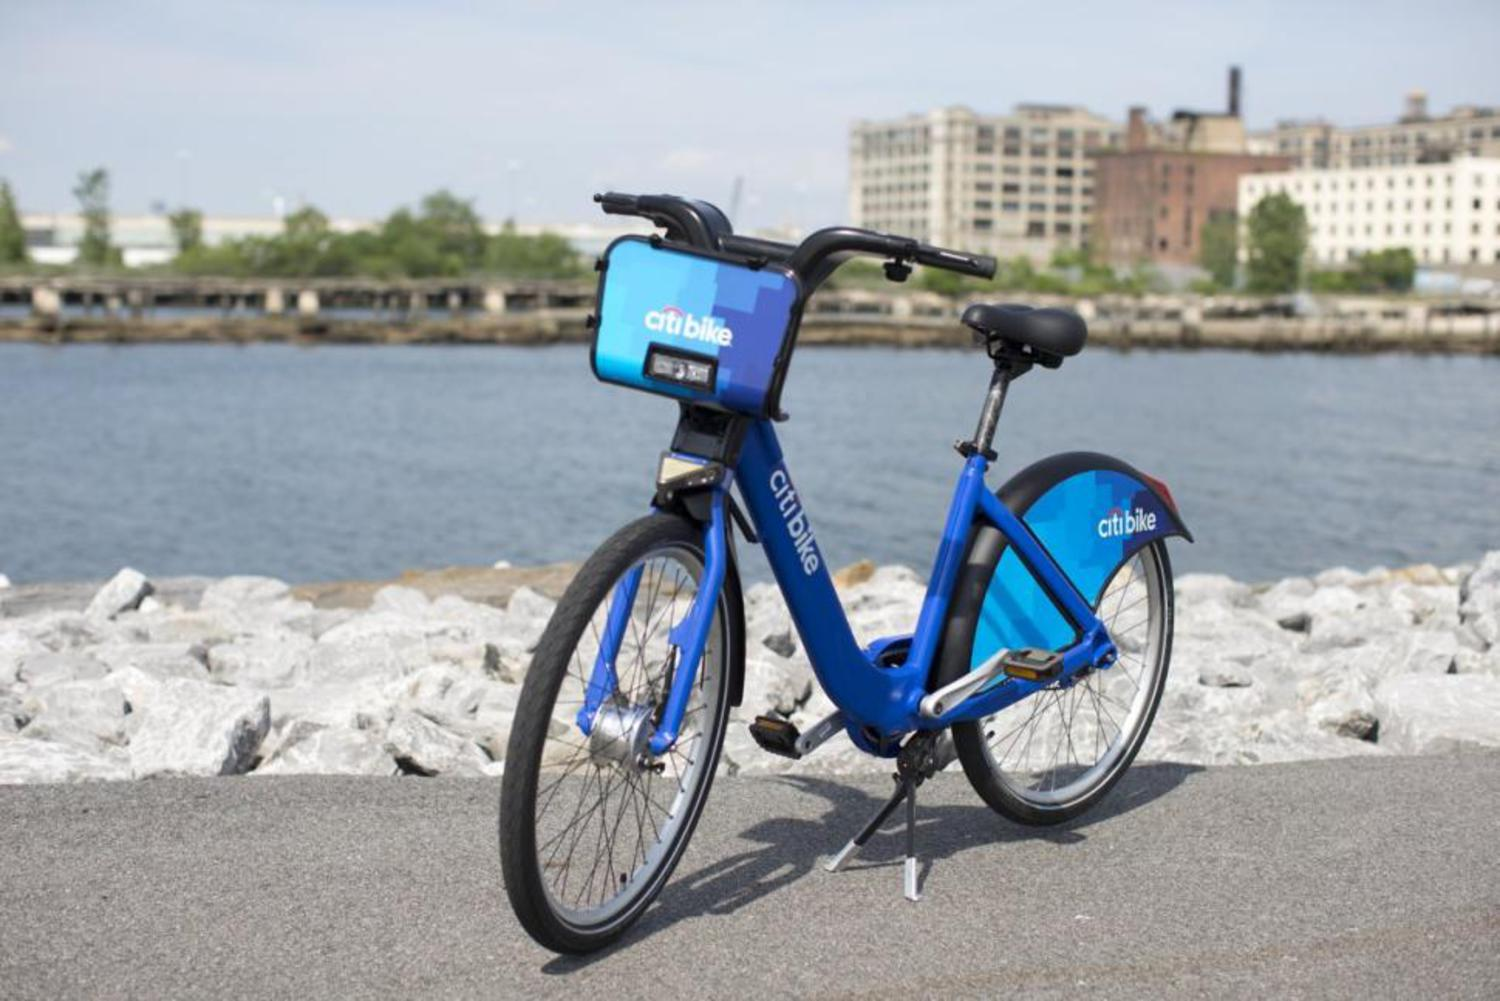 Citi Bikes have been redesigned by a world famous Olympic racing bike designer and will make their Big Apple debut later this month, officials said.